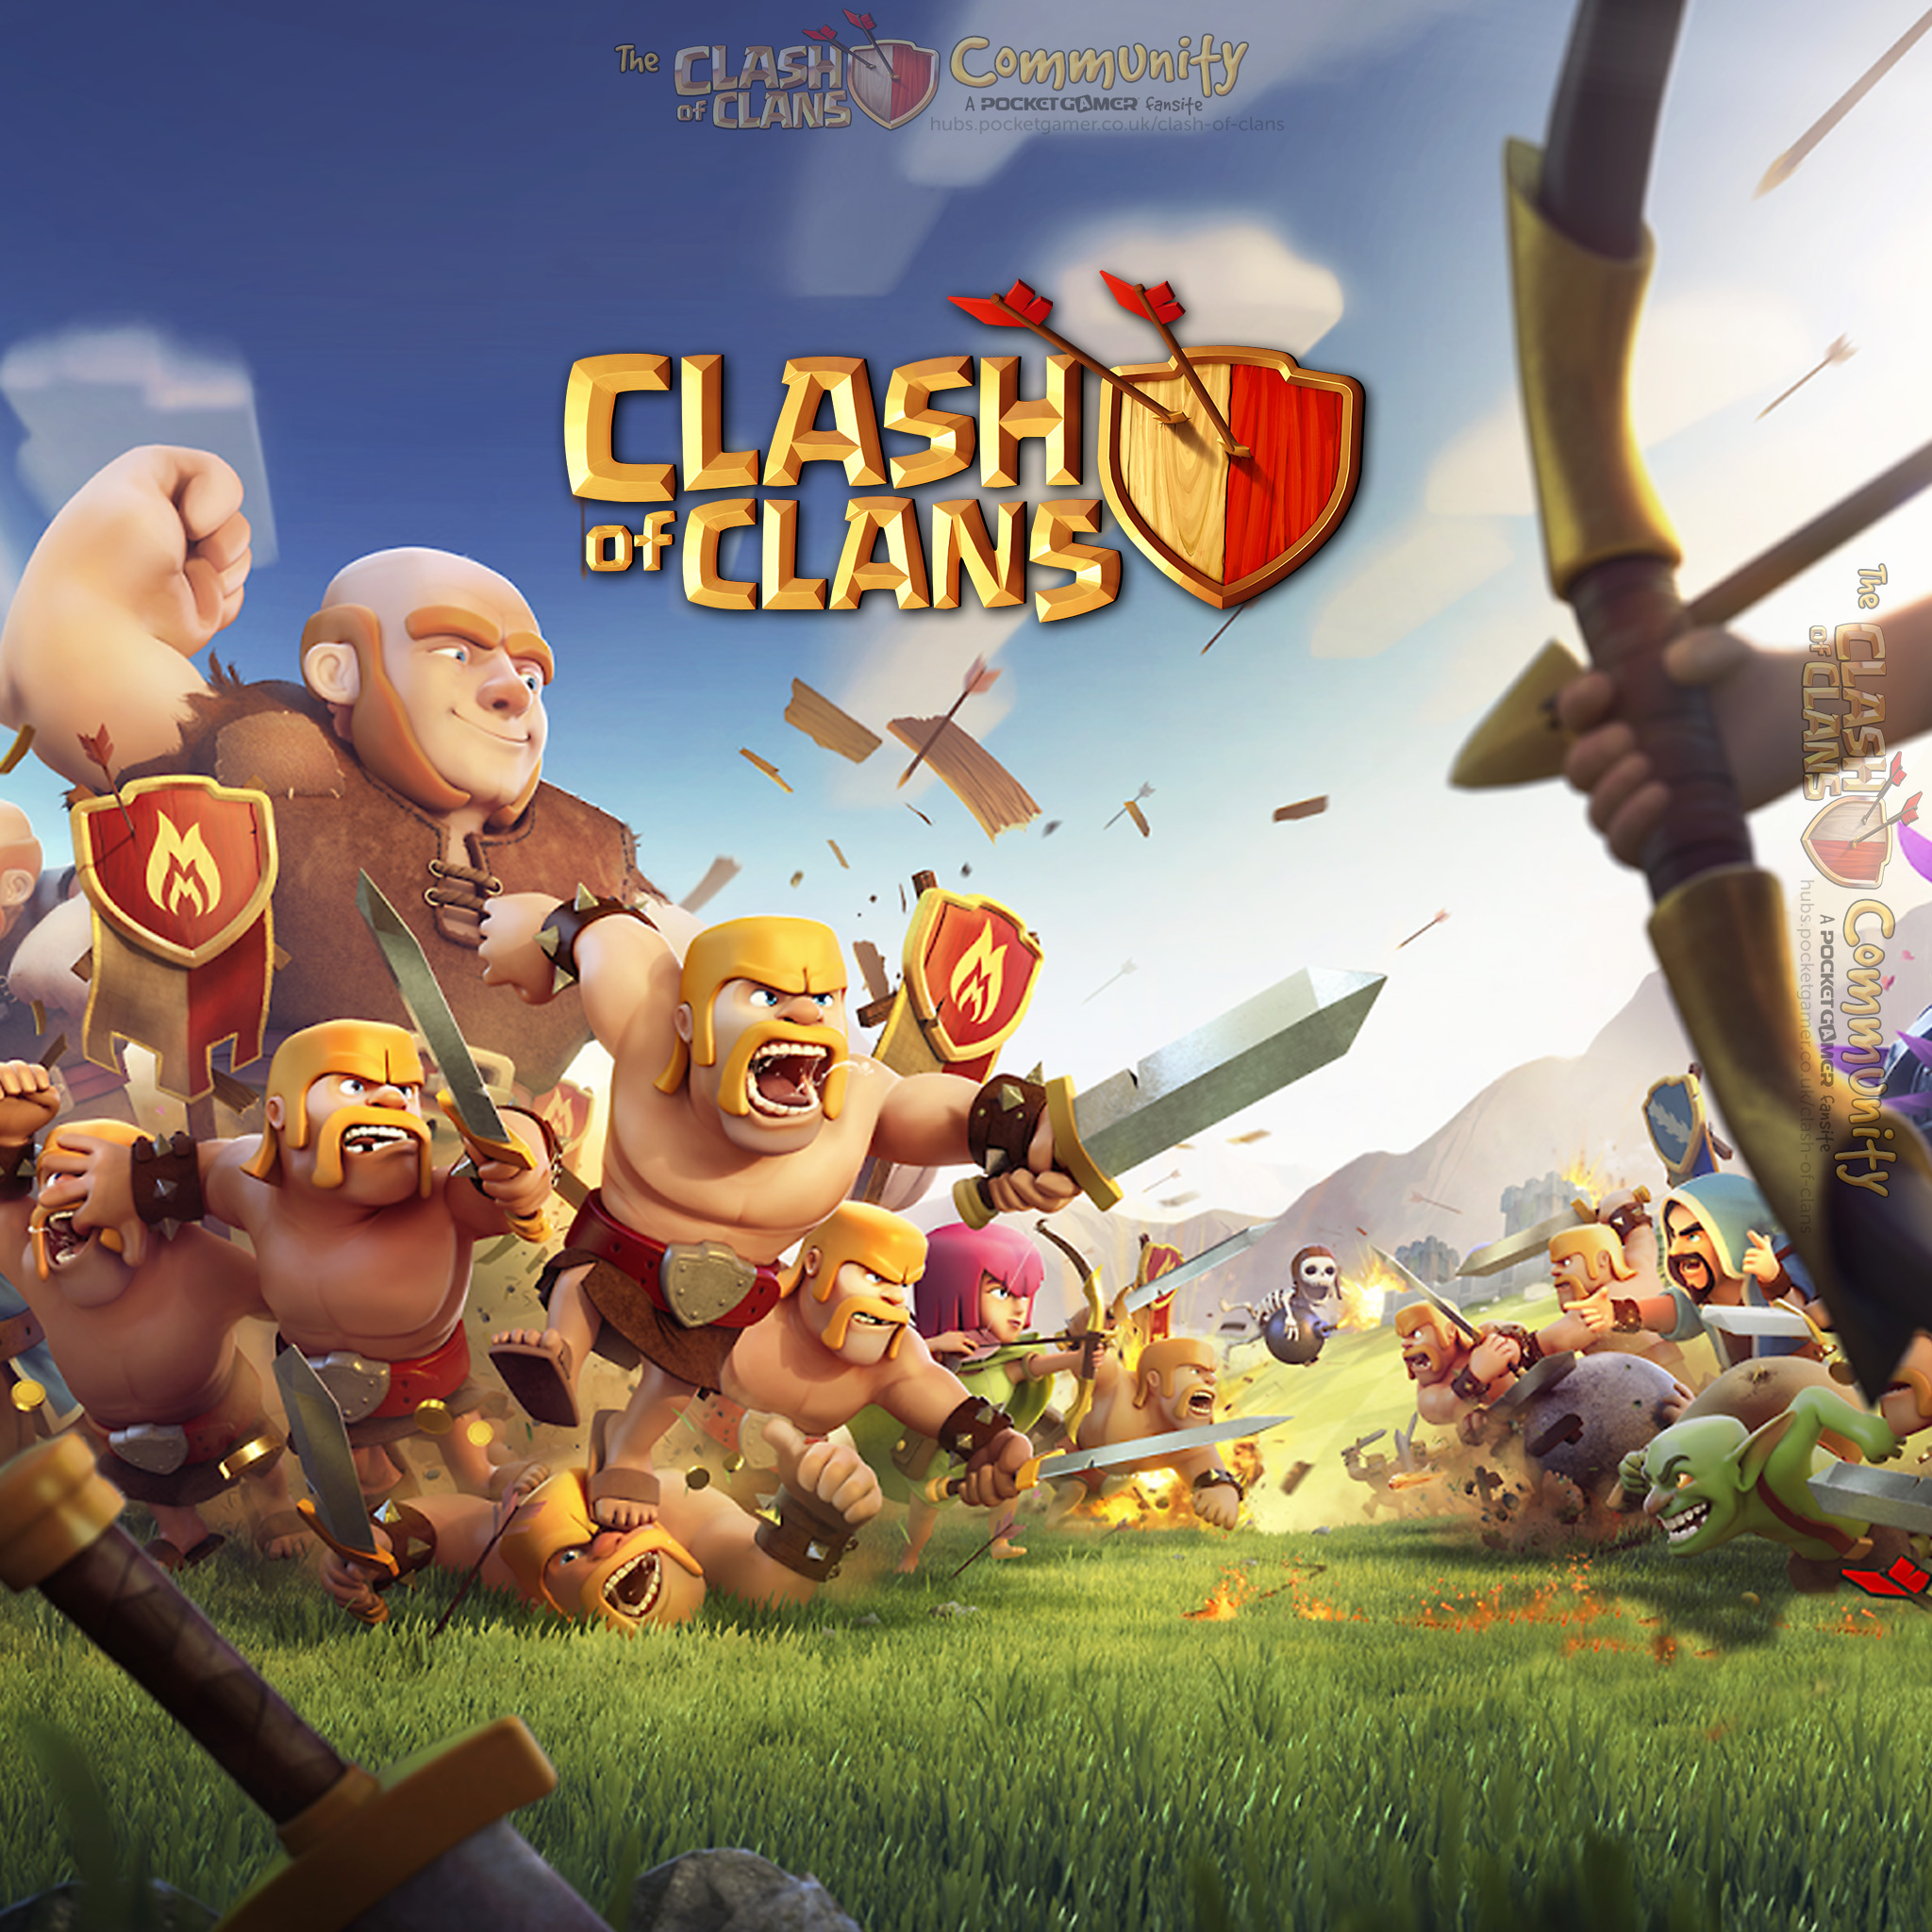 Download image 2048 X 1152 Pixel Clash Of Clans Wallpaper PC Android 2048x2048